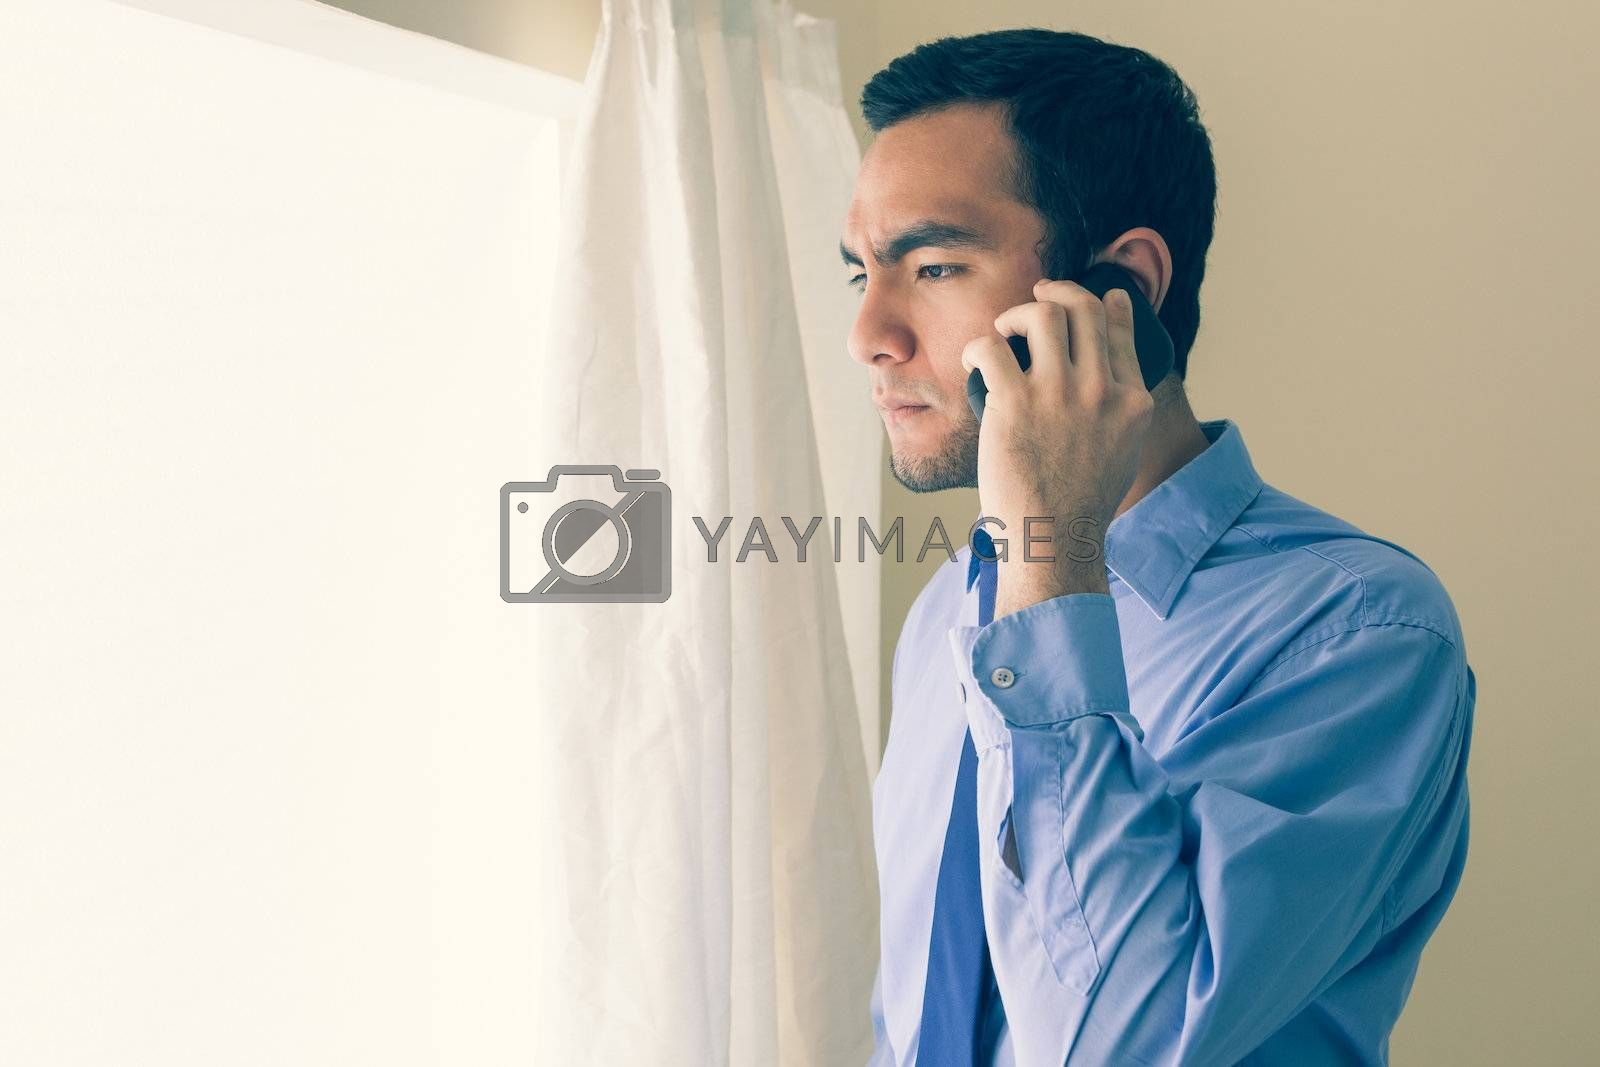 Irritated man calling someone with a mobile phone and looking out the window by Wavebreakmedia